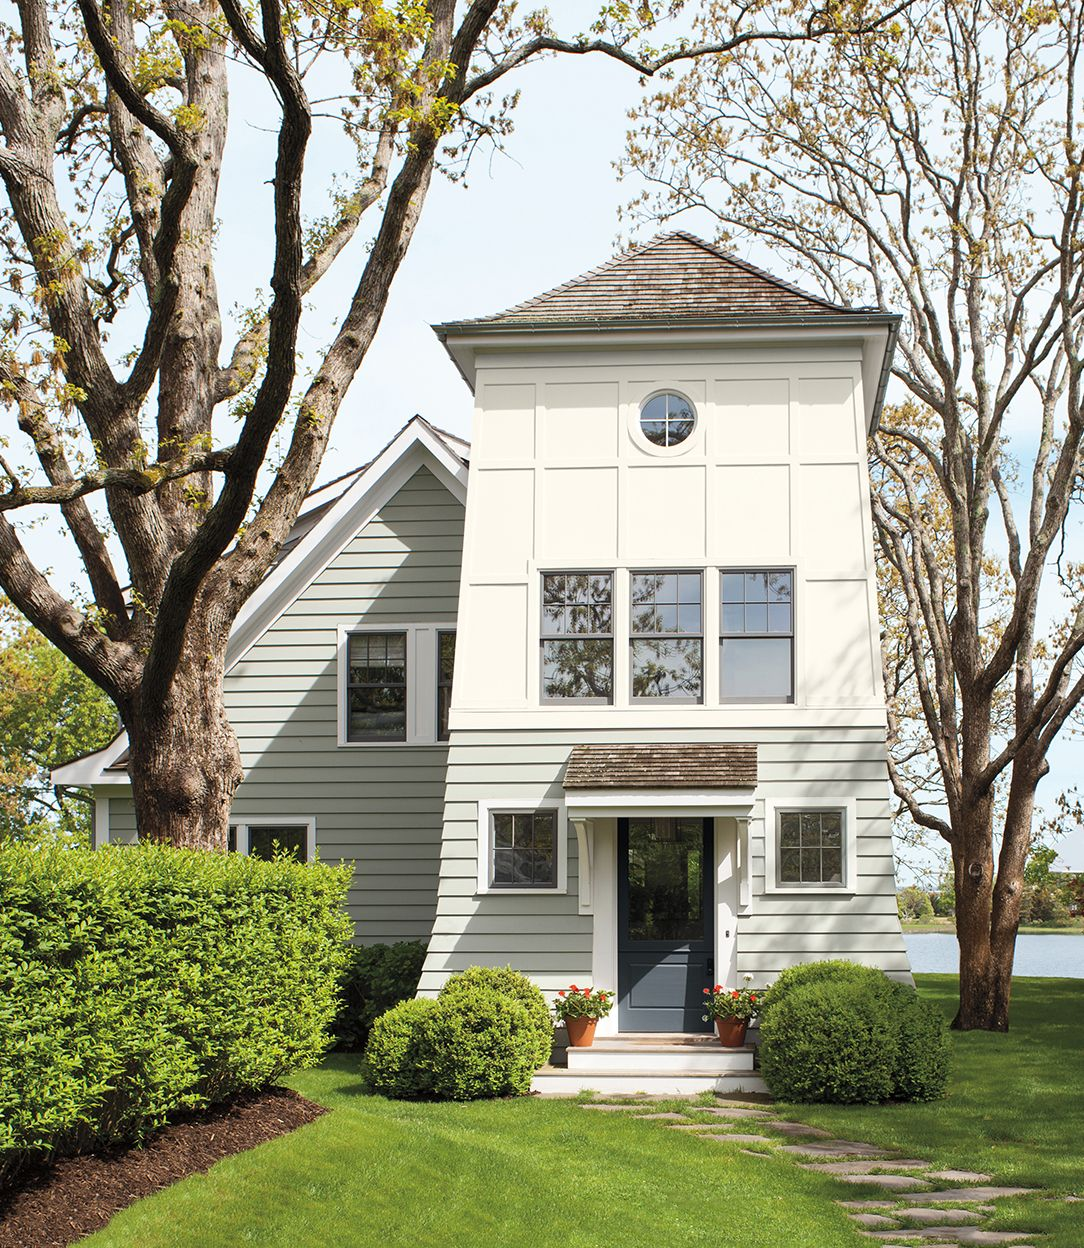 Exterior Home Paint Colors 2018: The Paint Colors You'll L-O-V-E In 2018